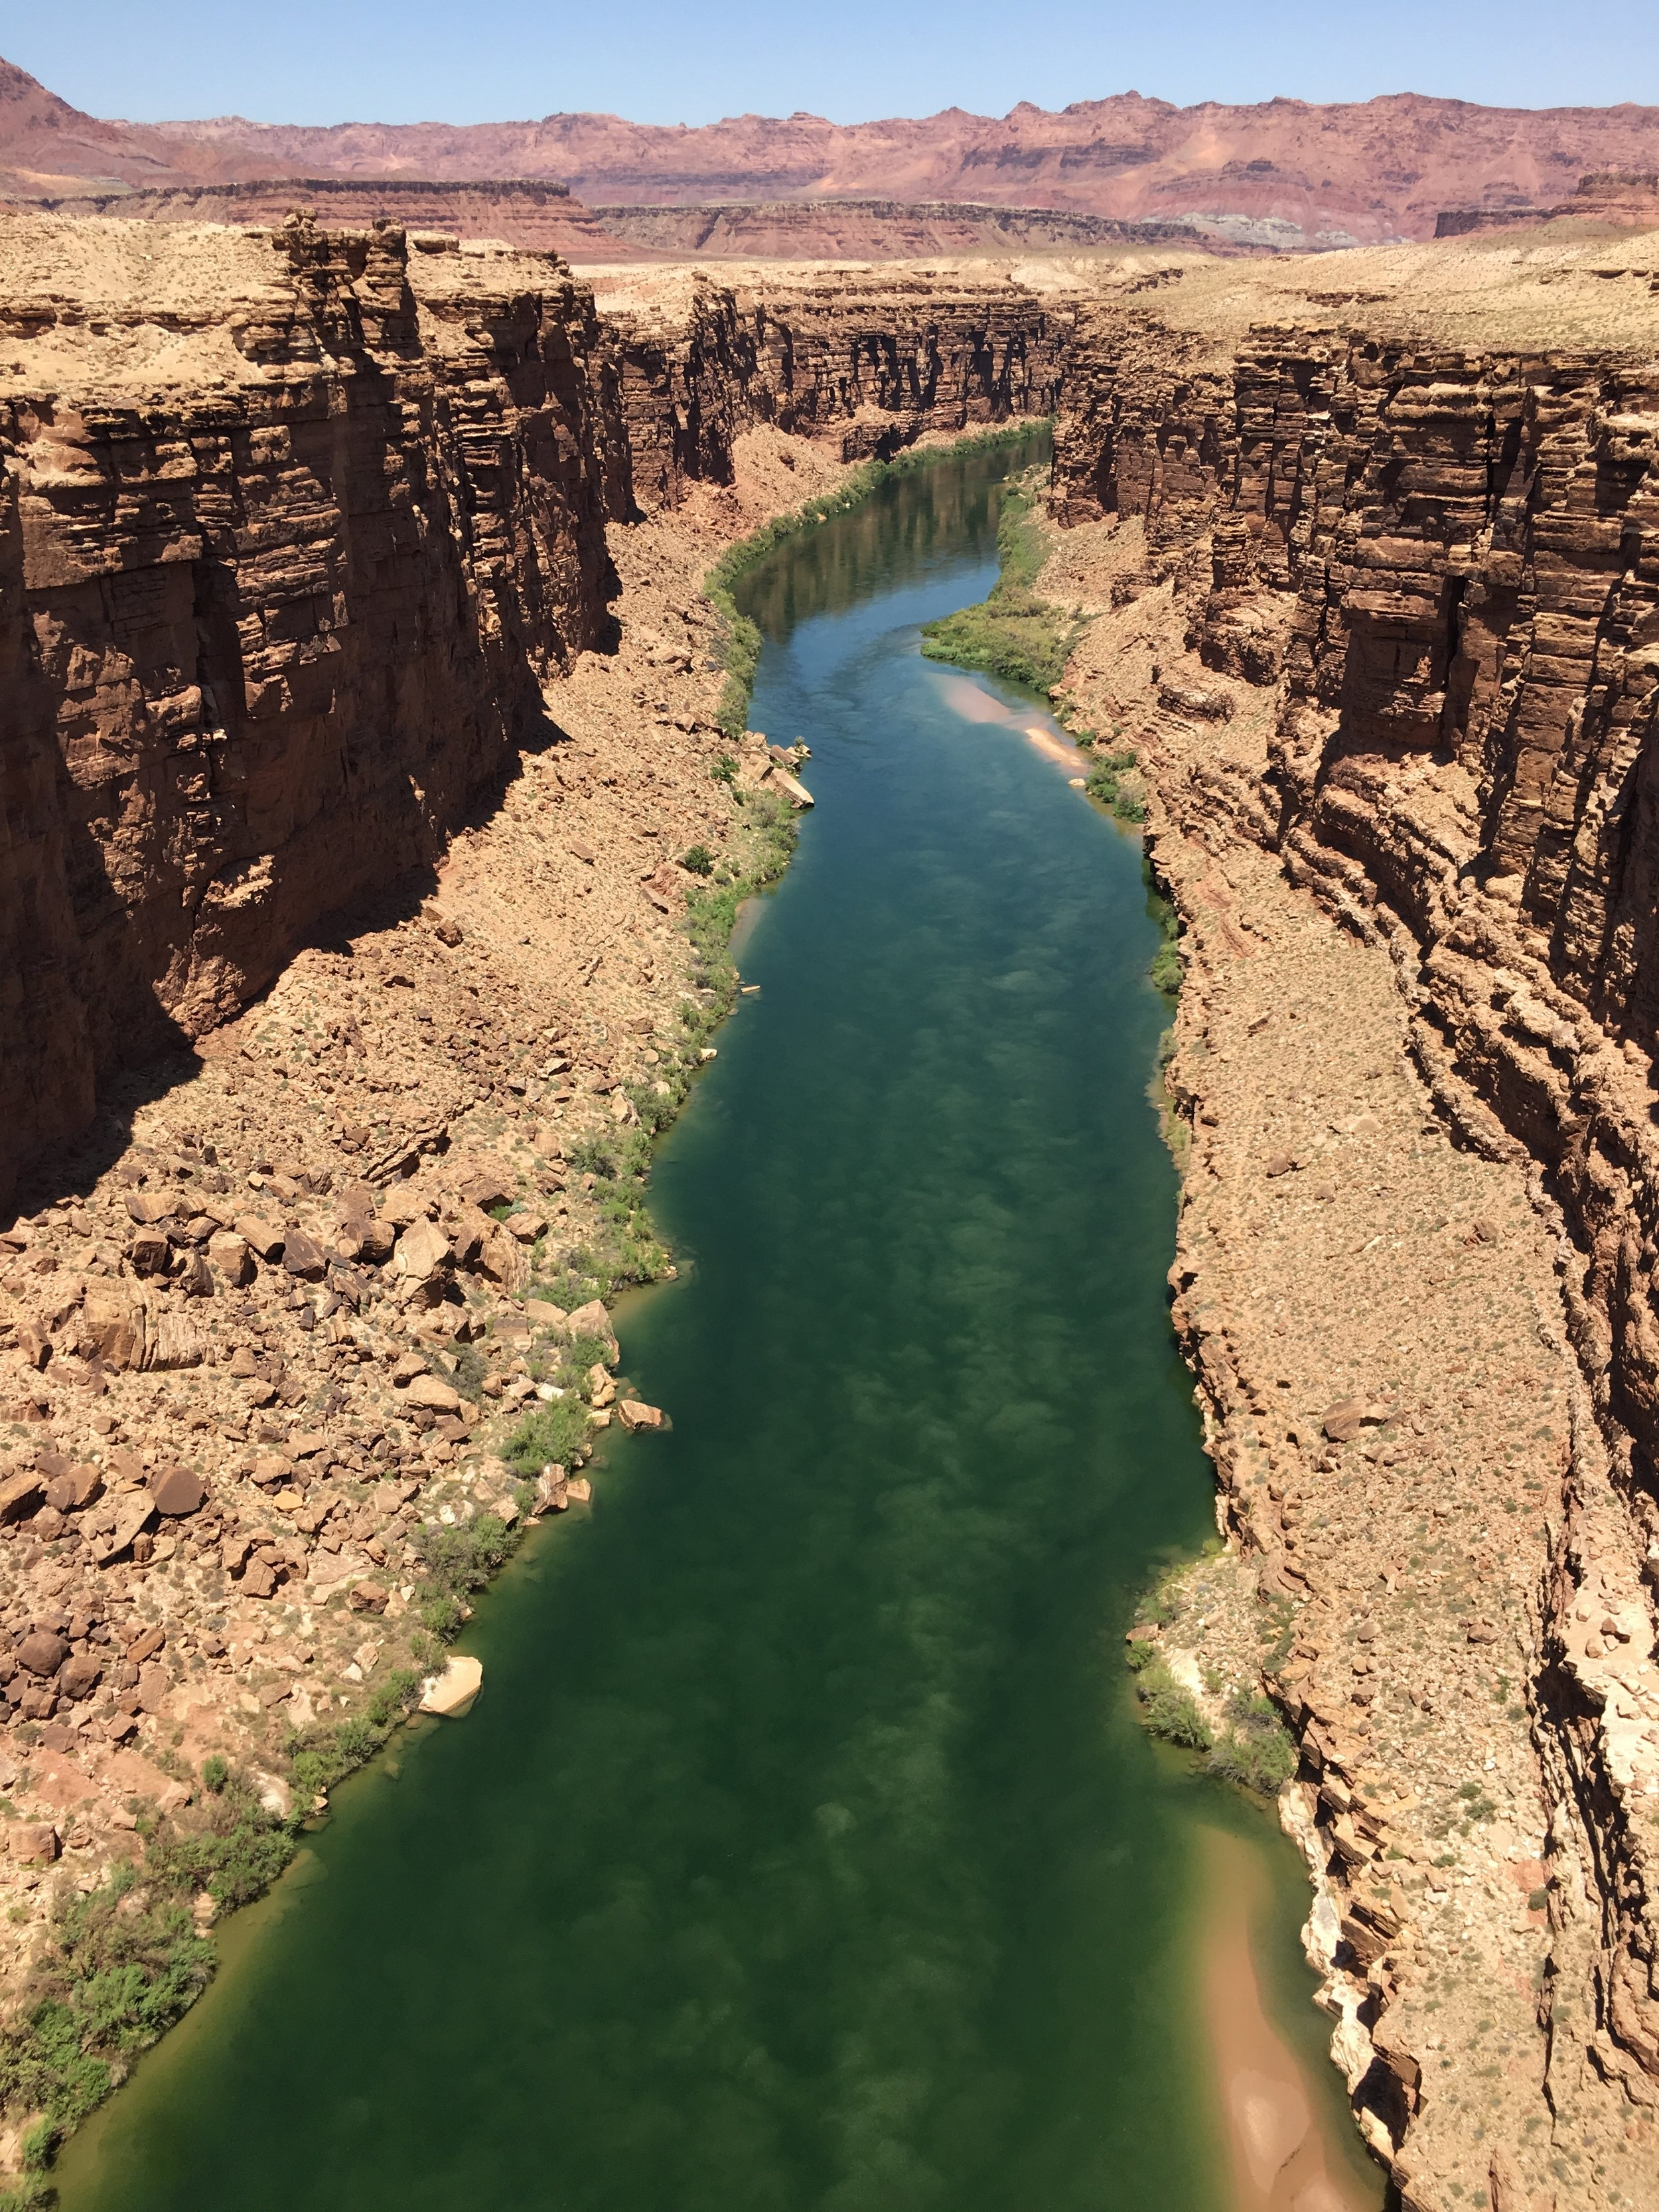 View of Marble Canyon from the Navajo bridge. Located approximately 40 minutes from Horseshoe Bend.